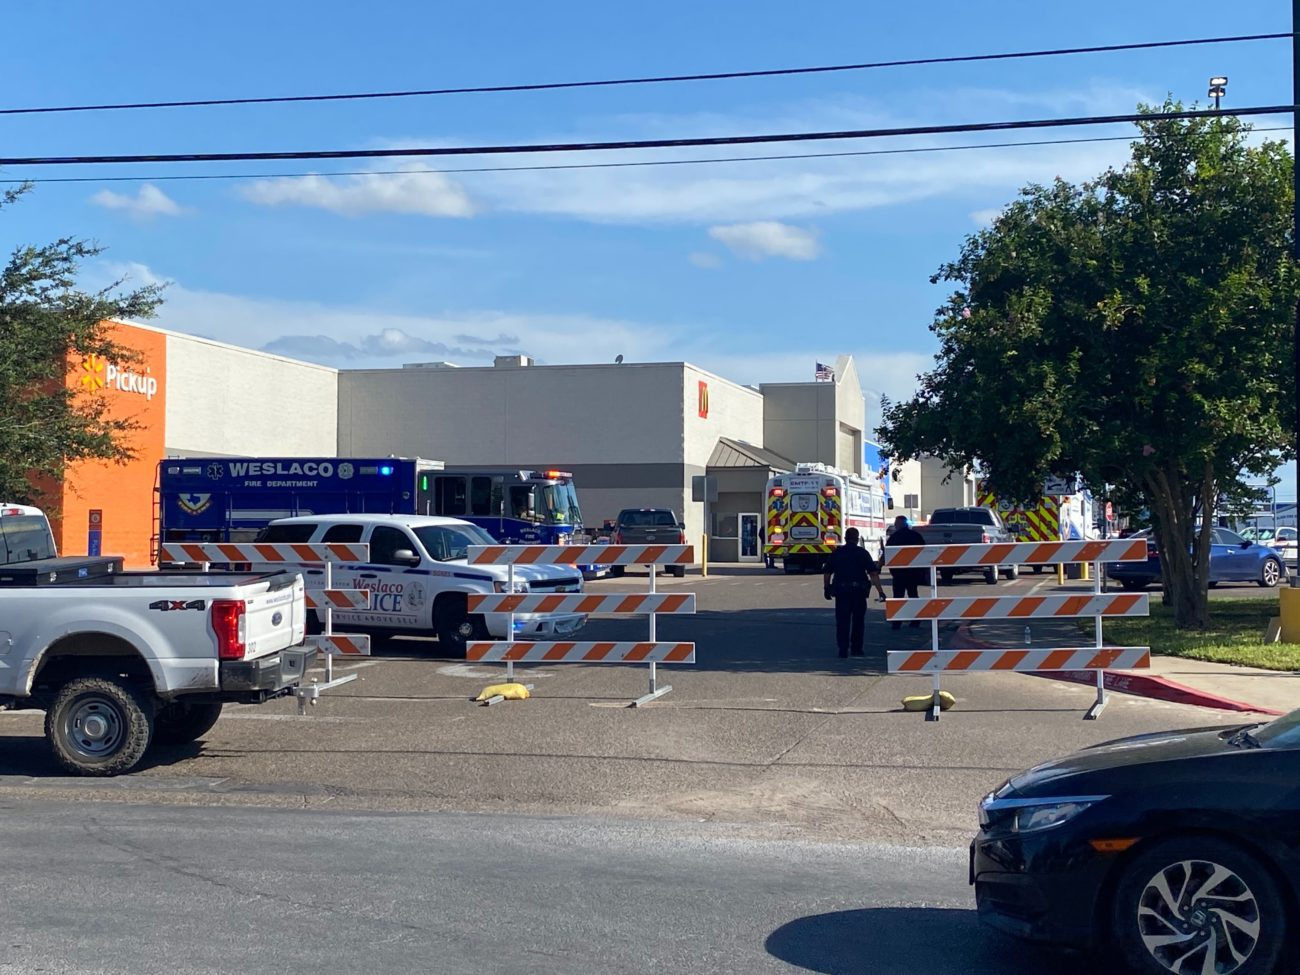 Police respond to active situation at Weslaco Walmart - The Monitor